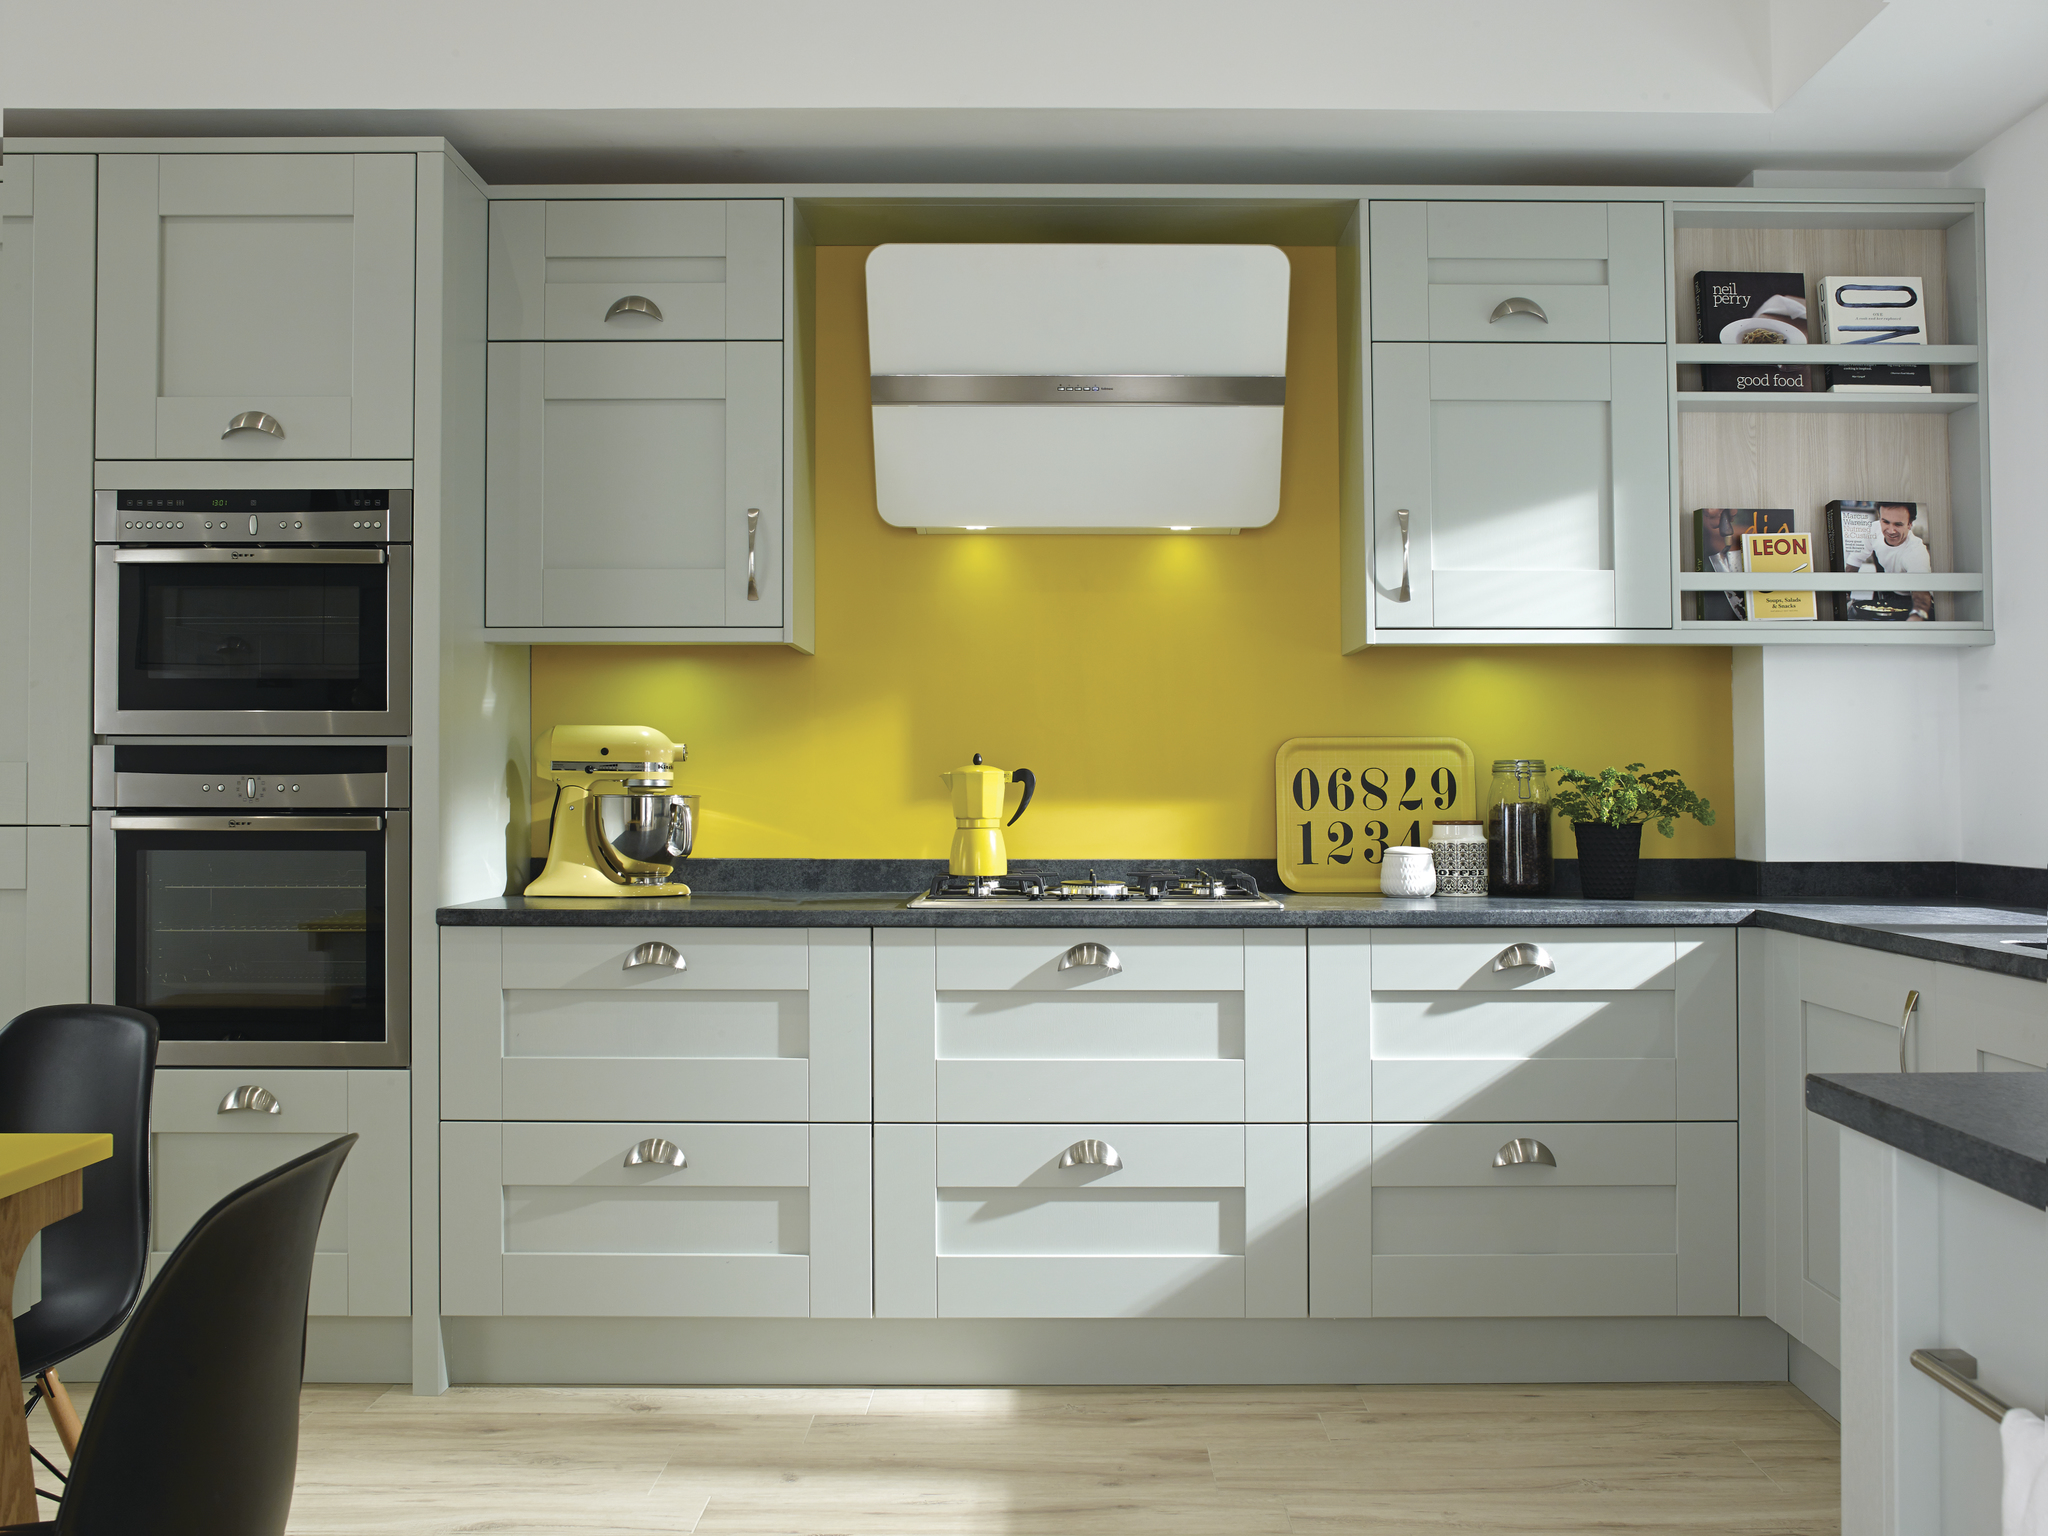 Milbourne £2660 - In porcelain, & other colour optionsFree Neff oven,hob,hood,Dishwasher+granite quarts £3000+installation £2400=Total £ 8060       Free Consultation!